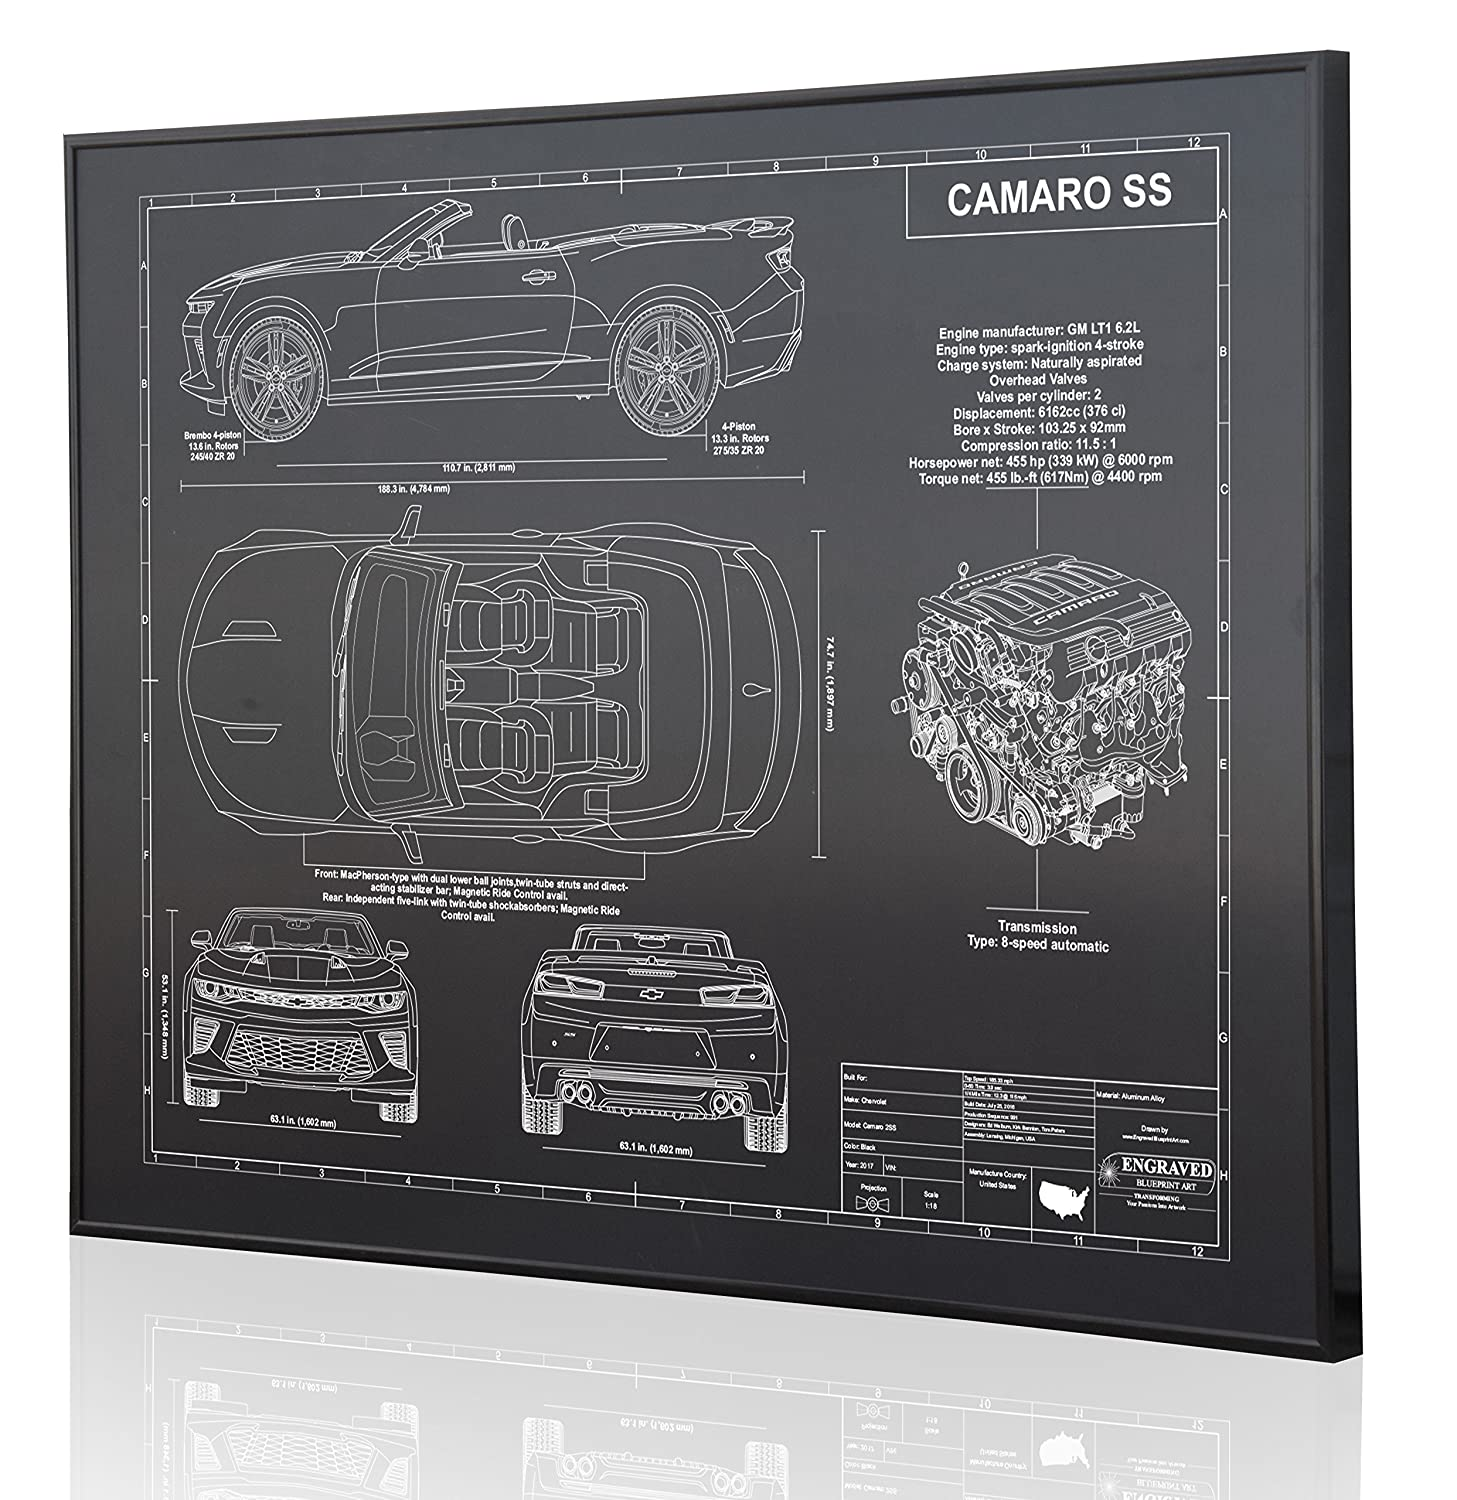 Amazon.com: Chevrolet Camaro SS Convertible 6th Generation Blueprint Artwork-Laser Marked & Personalized-The Perfect Camaro Gifts: Handmade